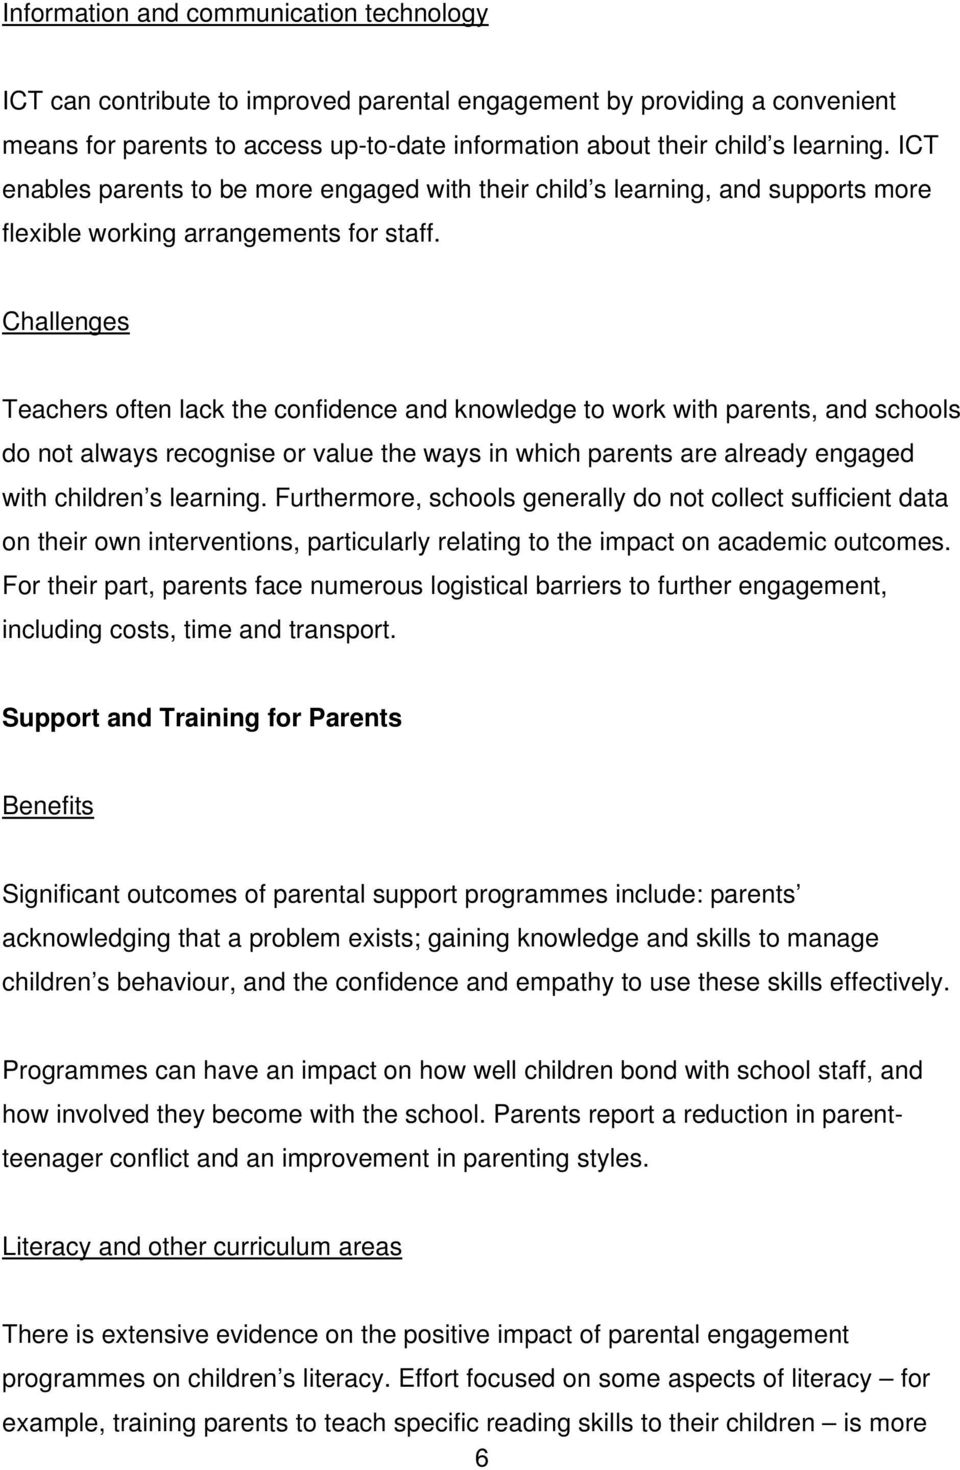 Challenges Teachers often lack the confidence and knowledge to work with parents, and schools do not always recognise or value the ways in which parents are already engaged with children s learning.